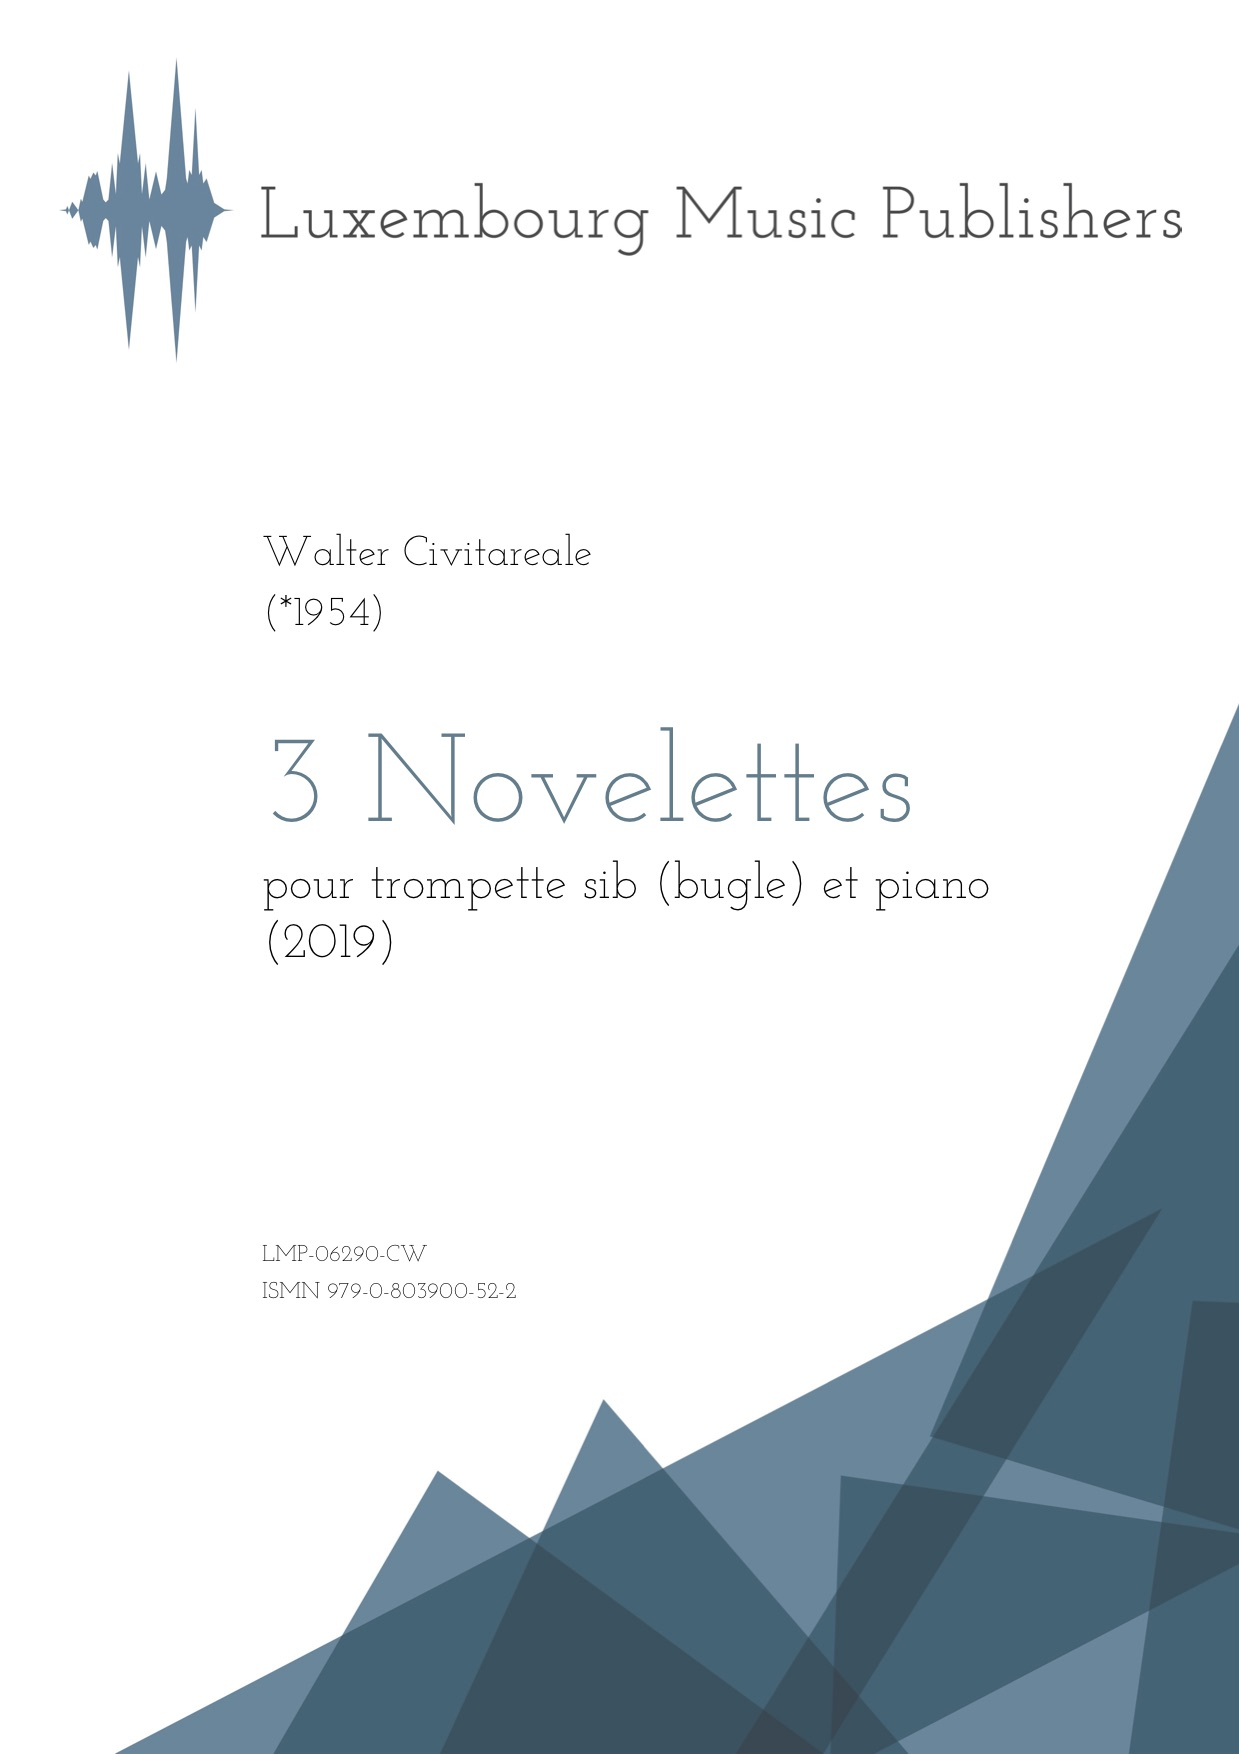 3 Novelettes. Sheet Music by Walter Civitareale, composer. Music for Trumpet Bb (Bugle) and Piano. Music for Brass and Piano.